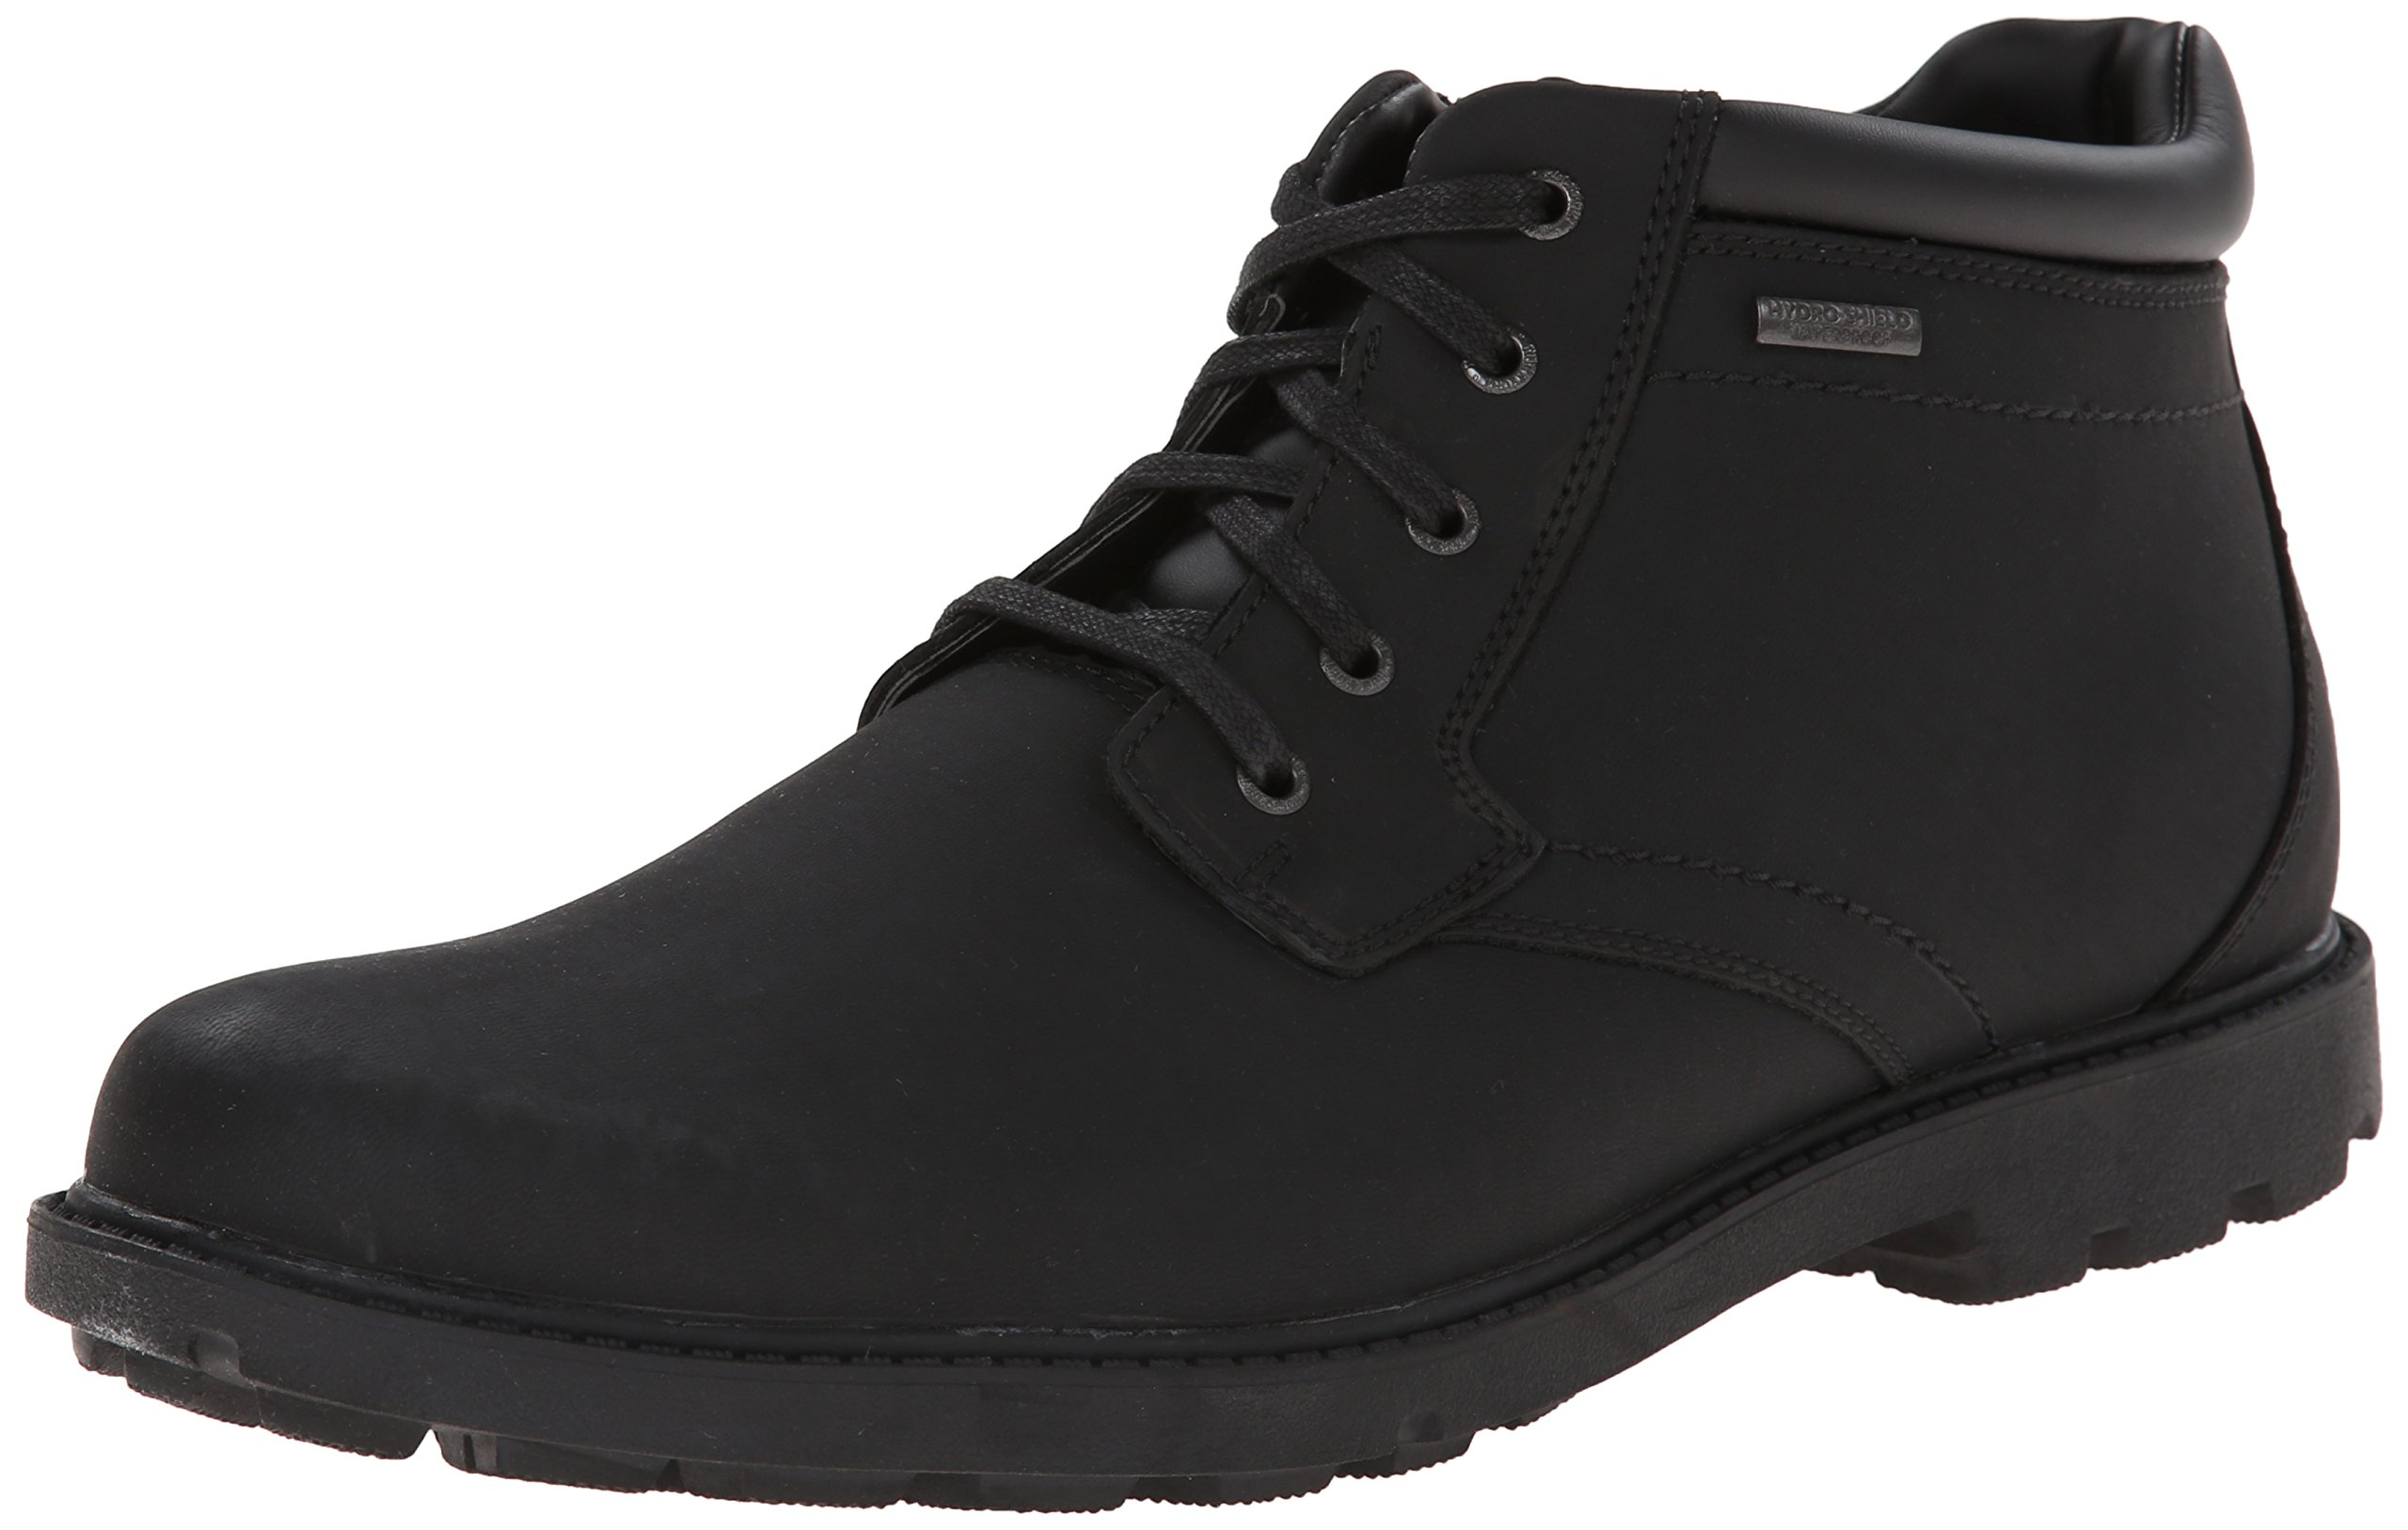 Rockport Men's Storm Surge Water Proof Plain Toe Boot Black 10 W (EE)-10 W by Rockport